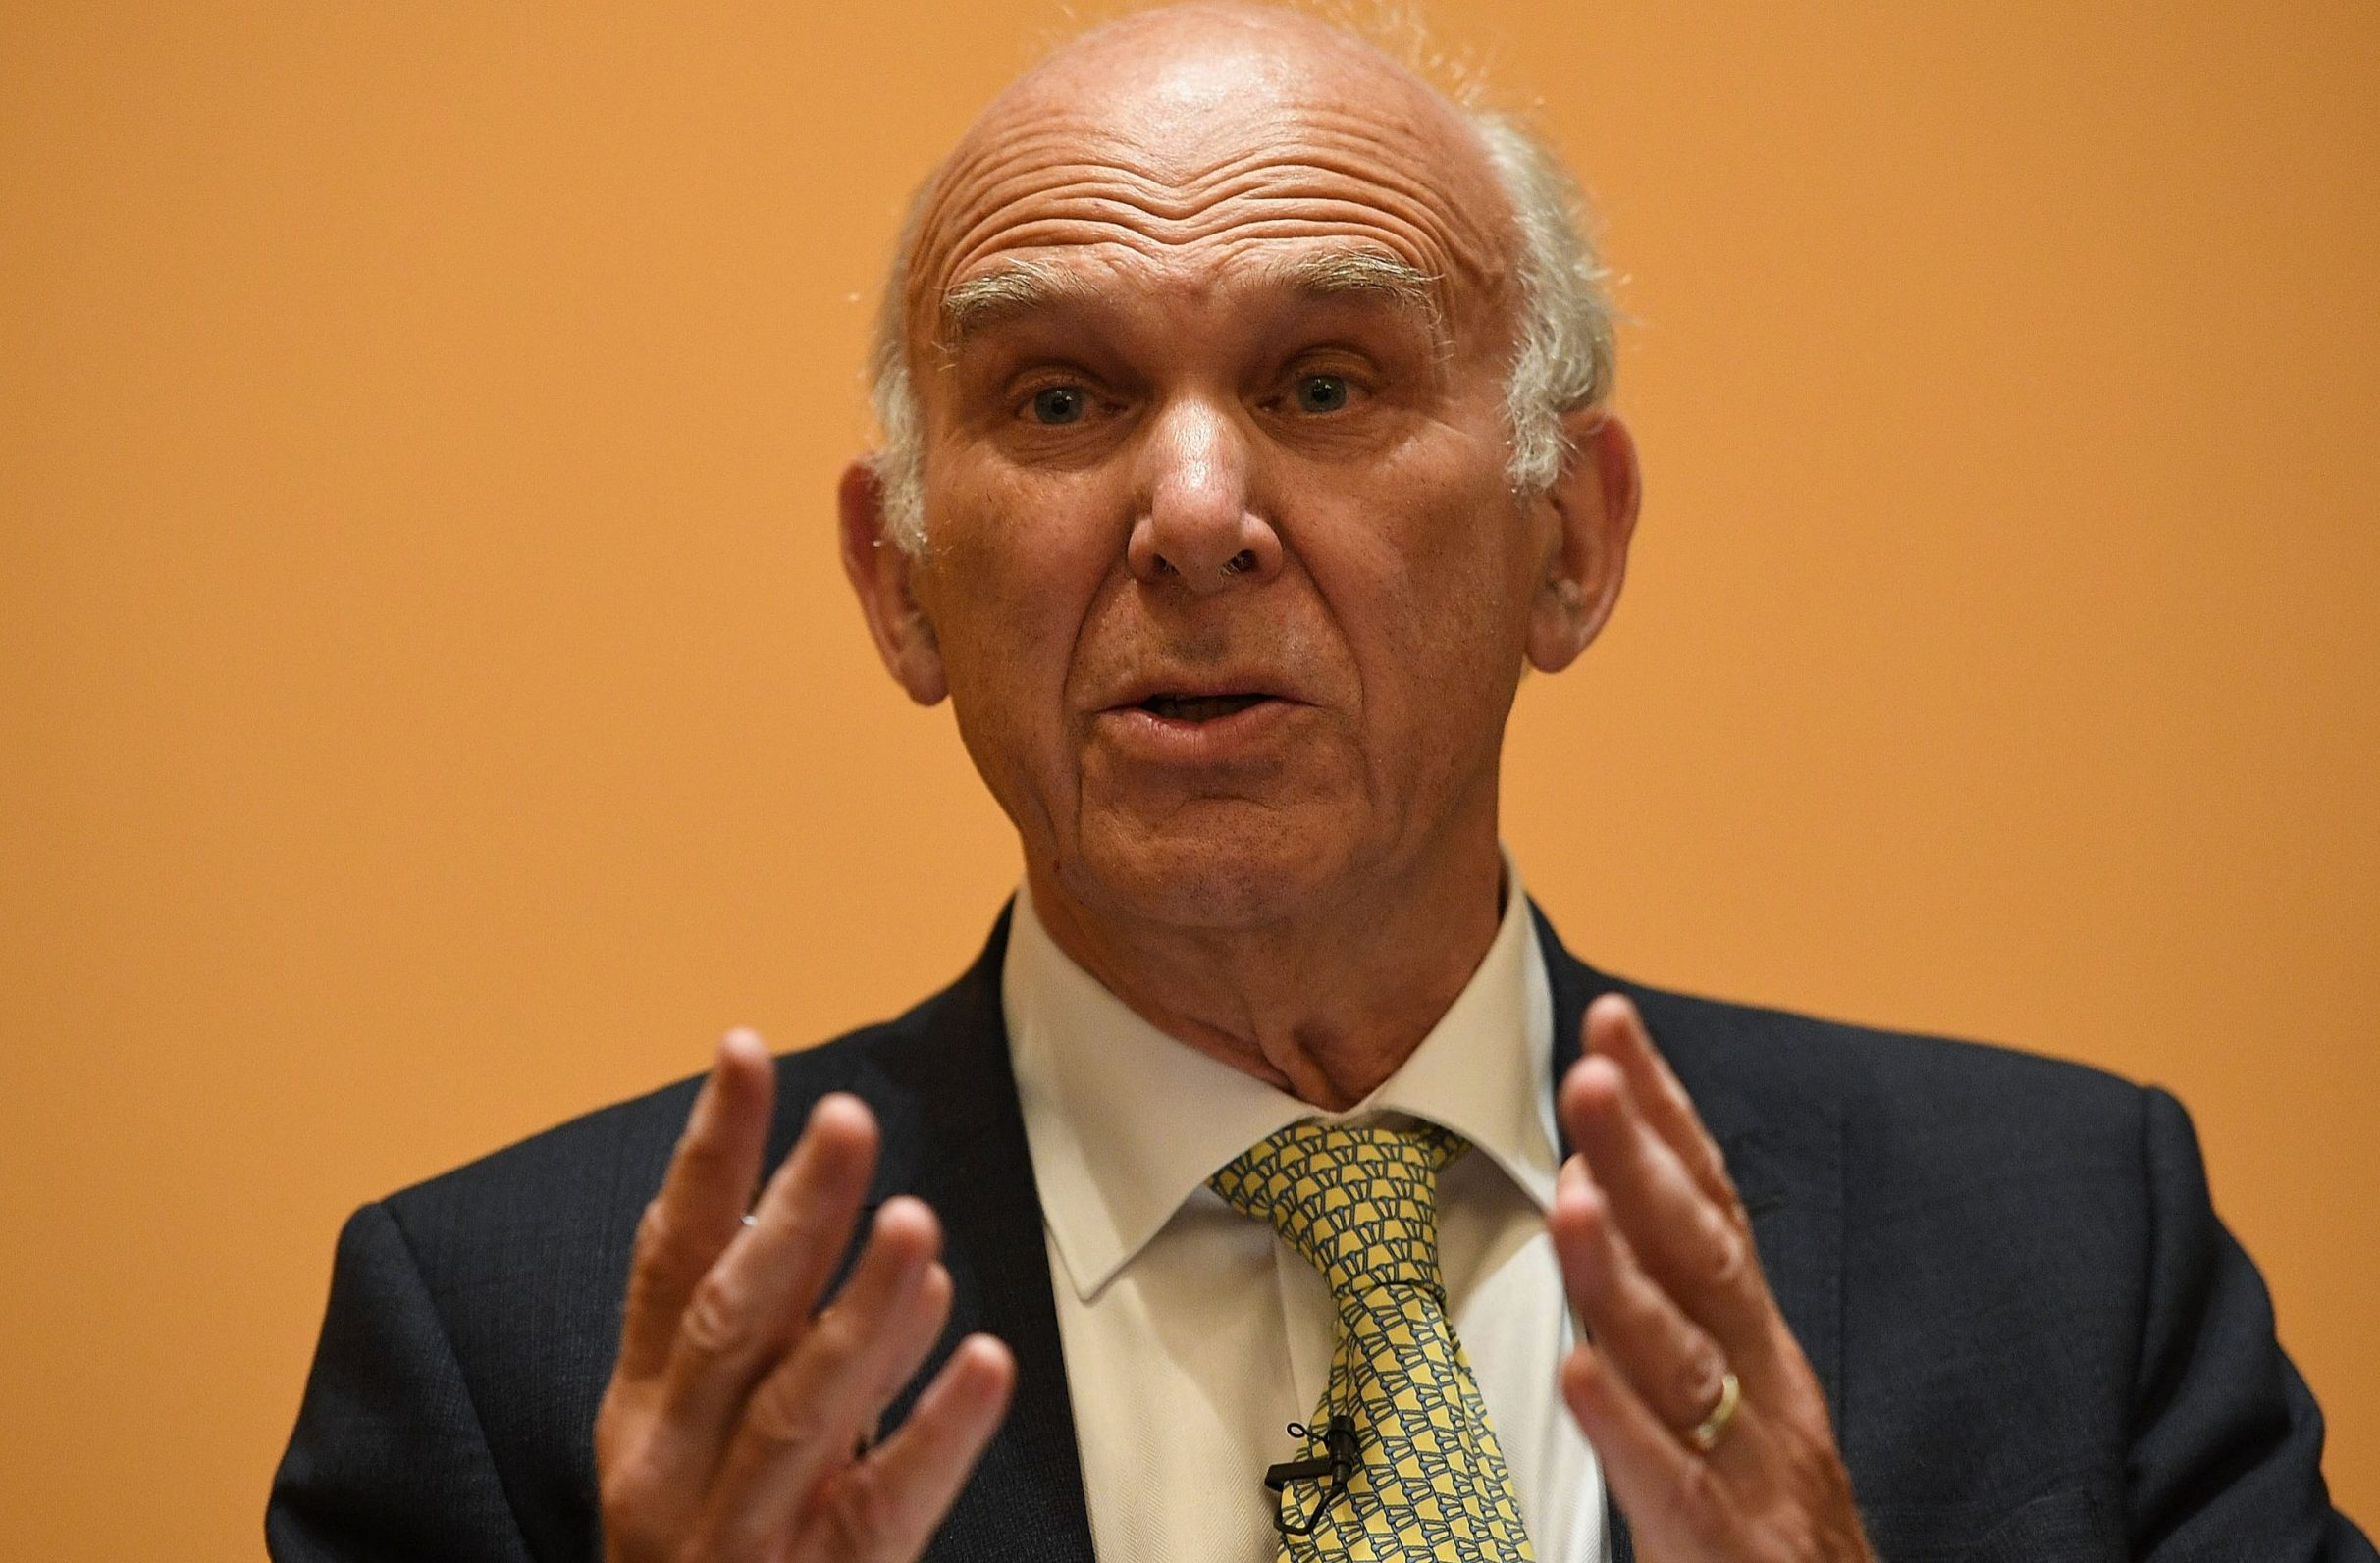 Sir Vince Cable has become Lib Dem leader after no one else wanted the job